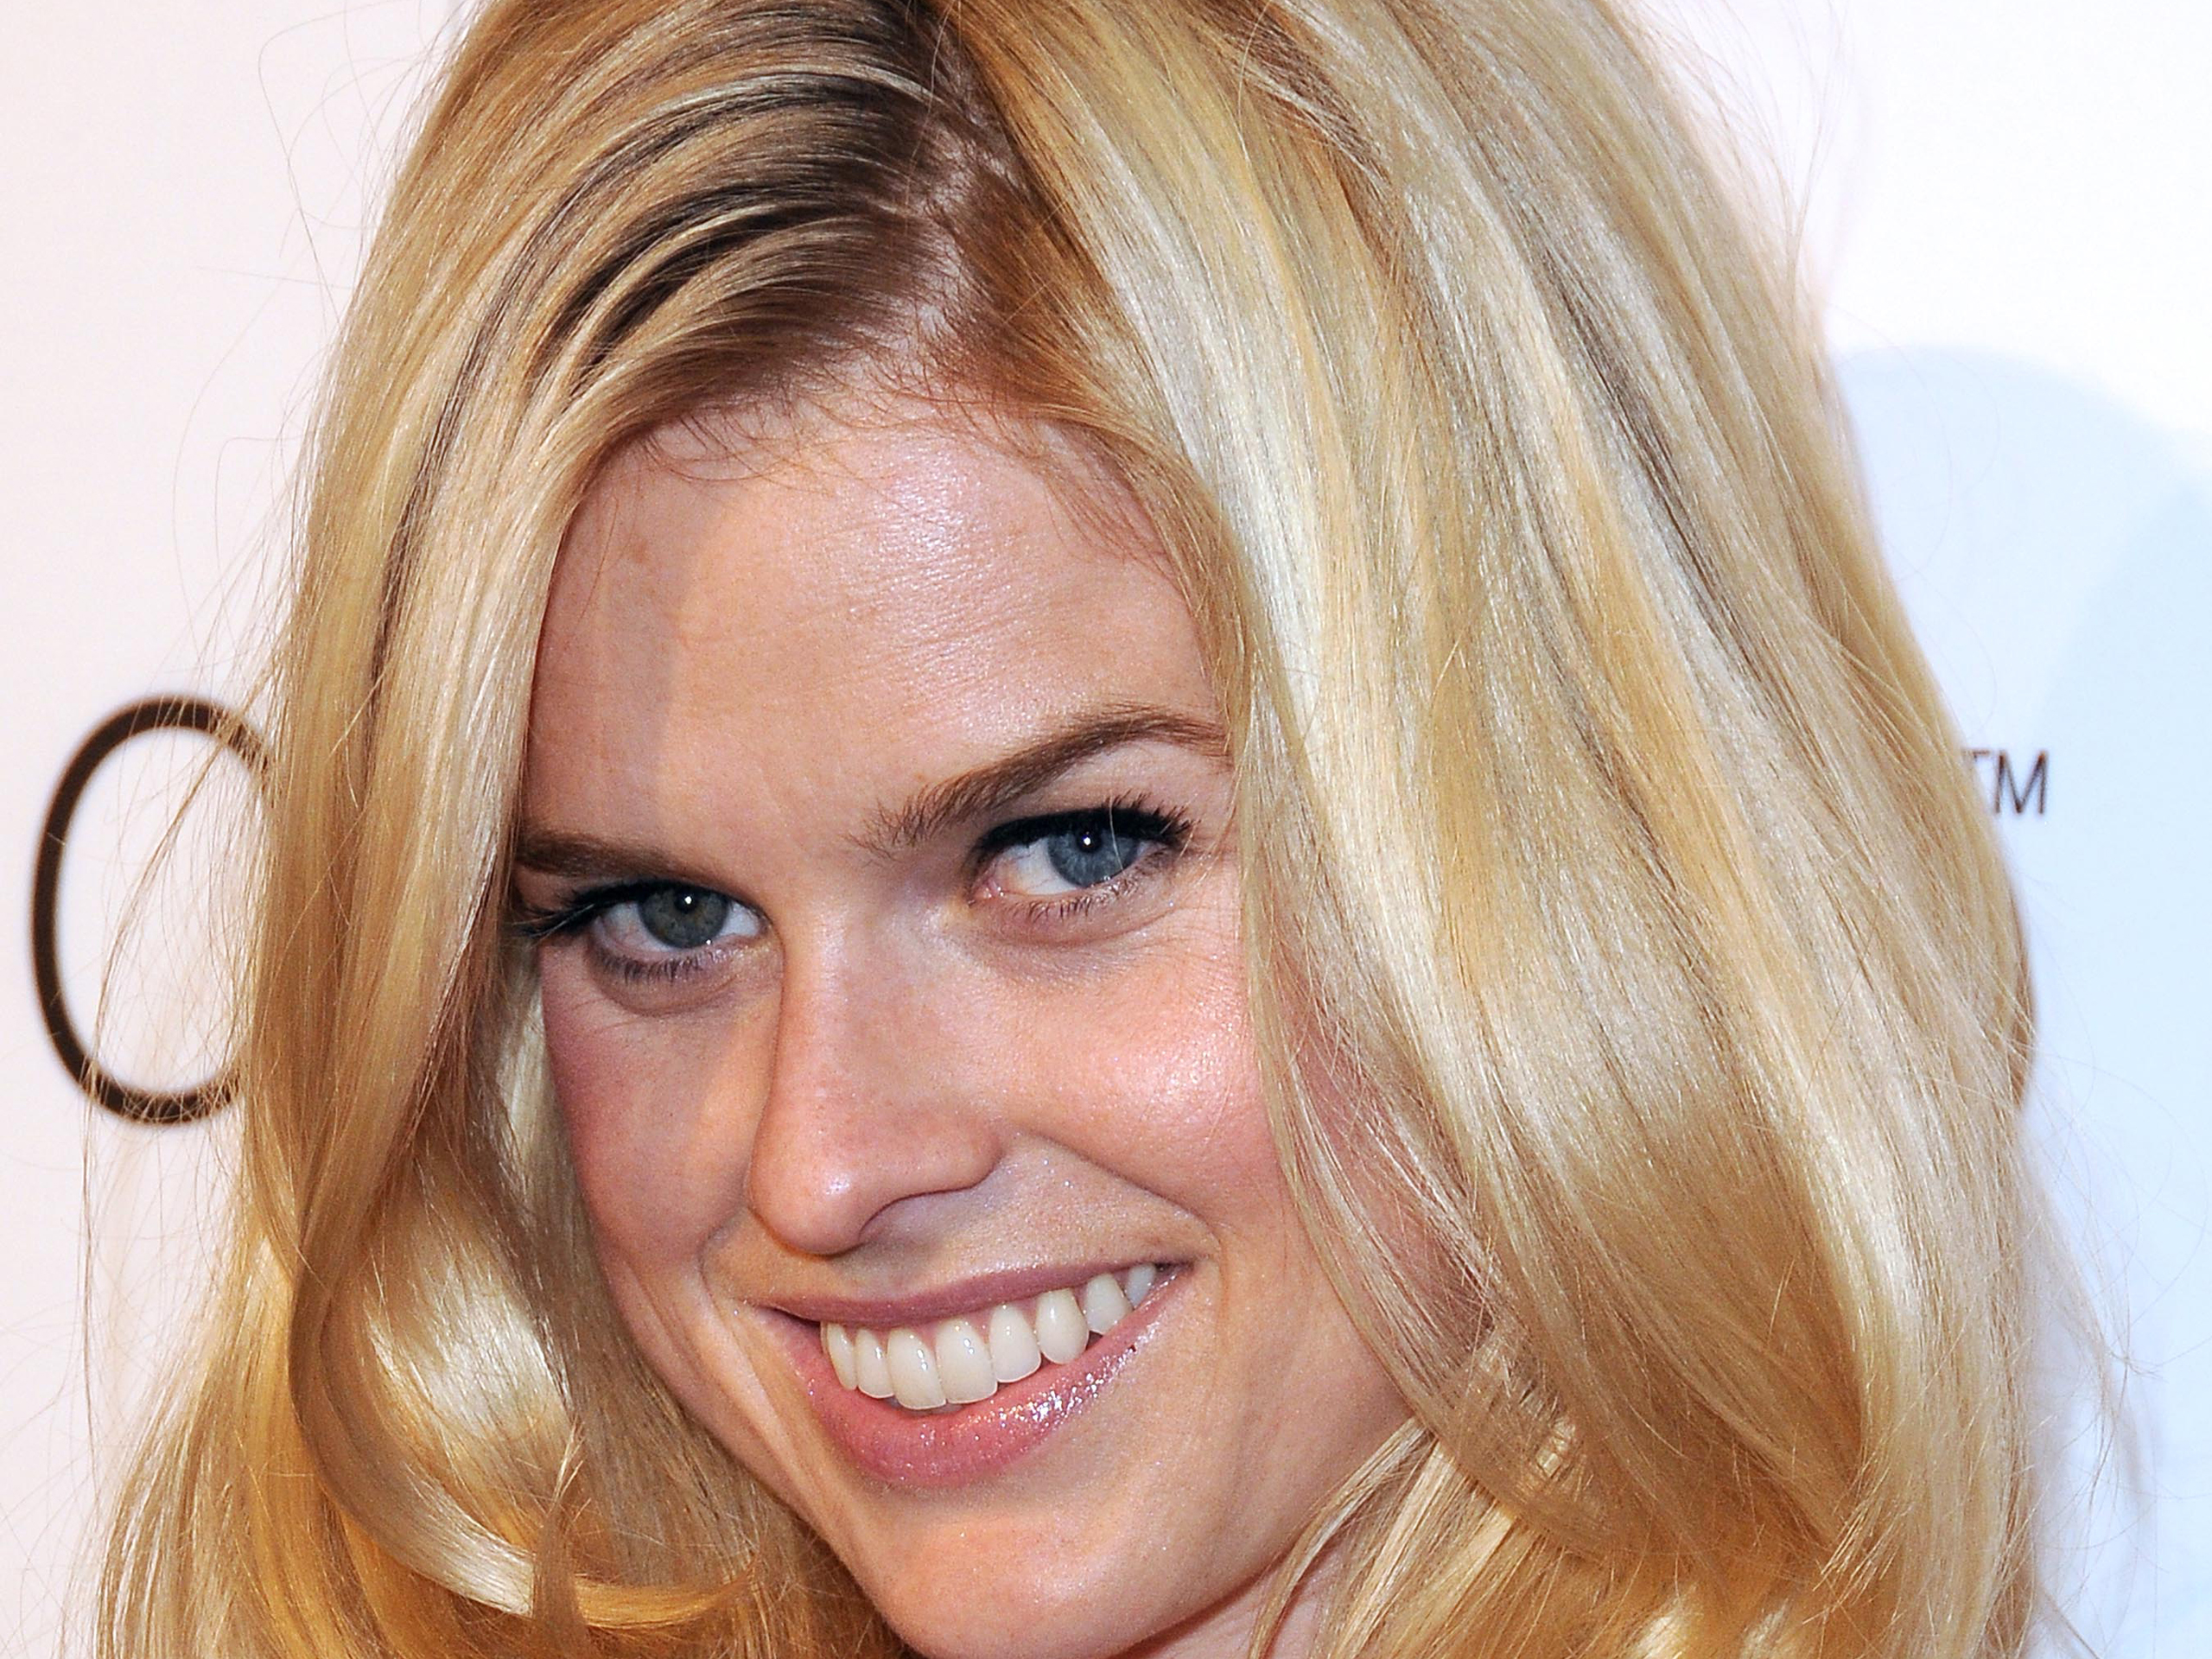 Alice Eve Face Wallpaper Pictures 56351 2560x1920 px ...